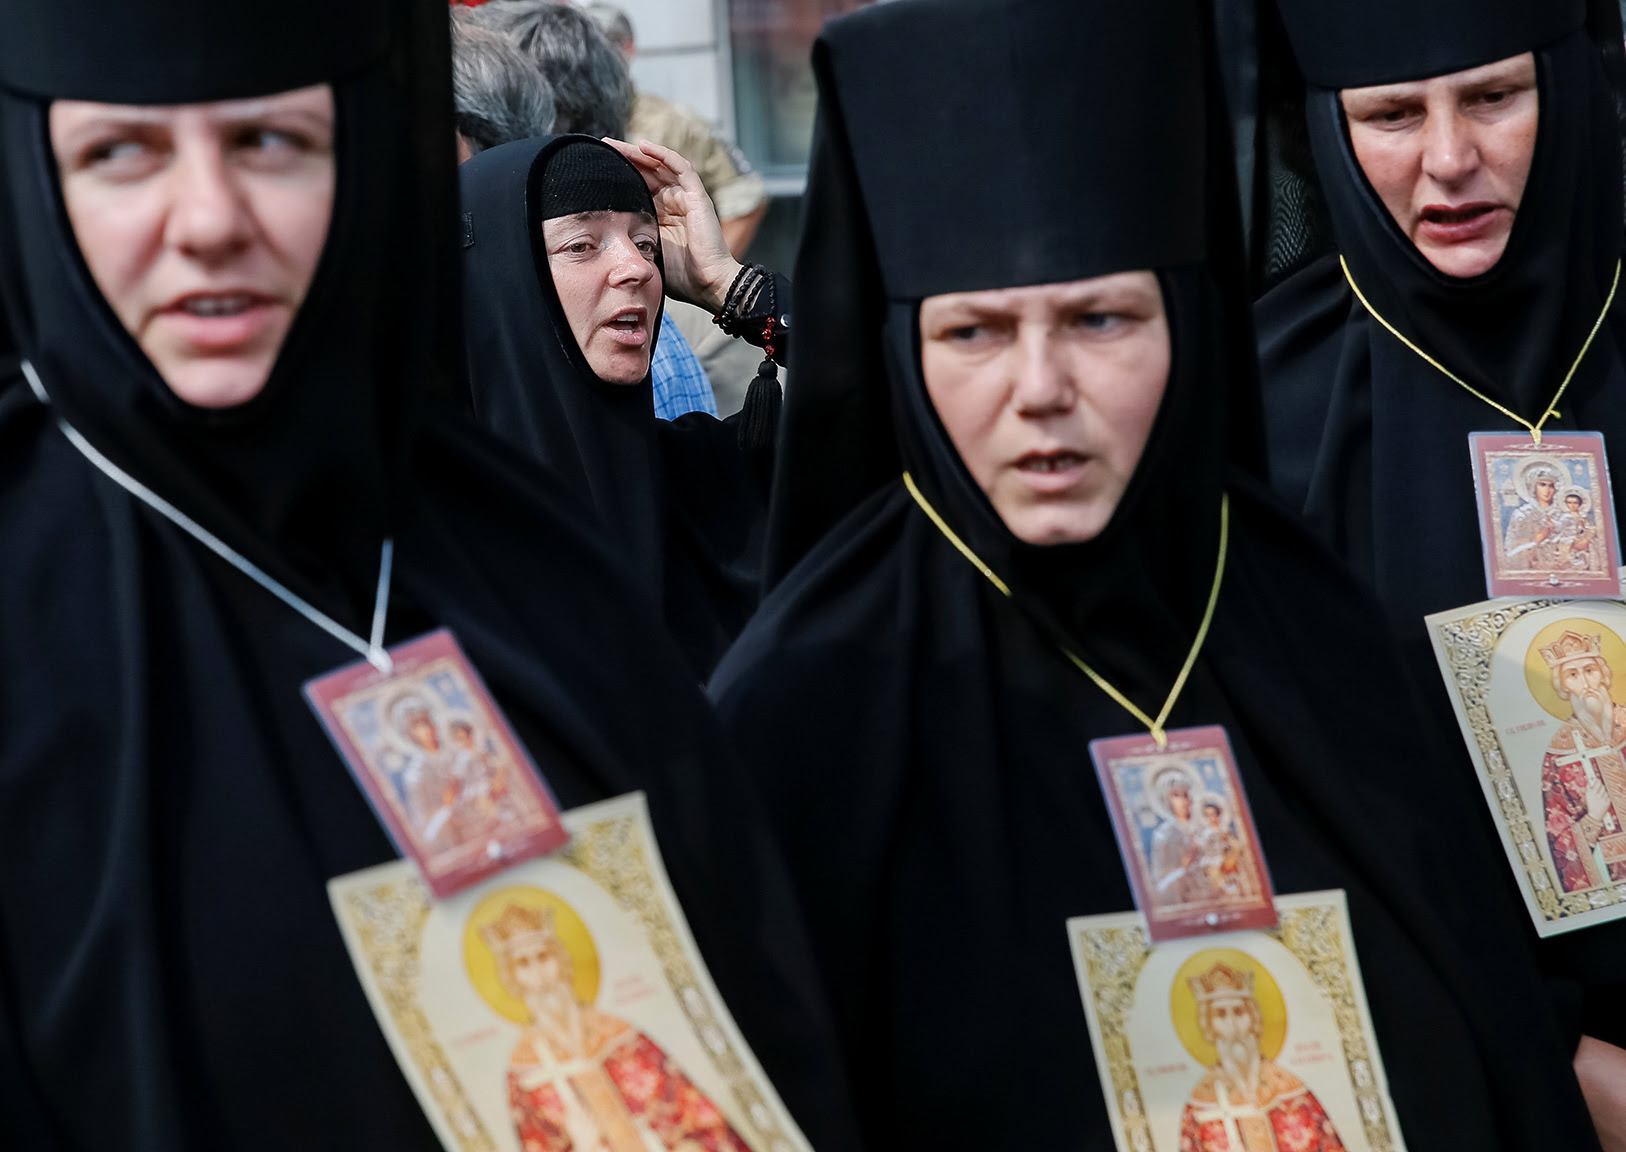 Nuns of Ukrainian Orthodox Church of the Moscow Patriarchate take part in a procession petitioning for peace in Kiev